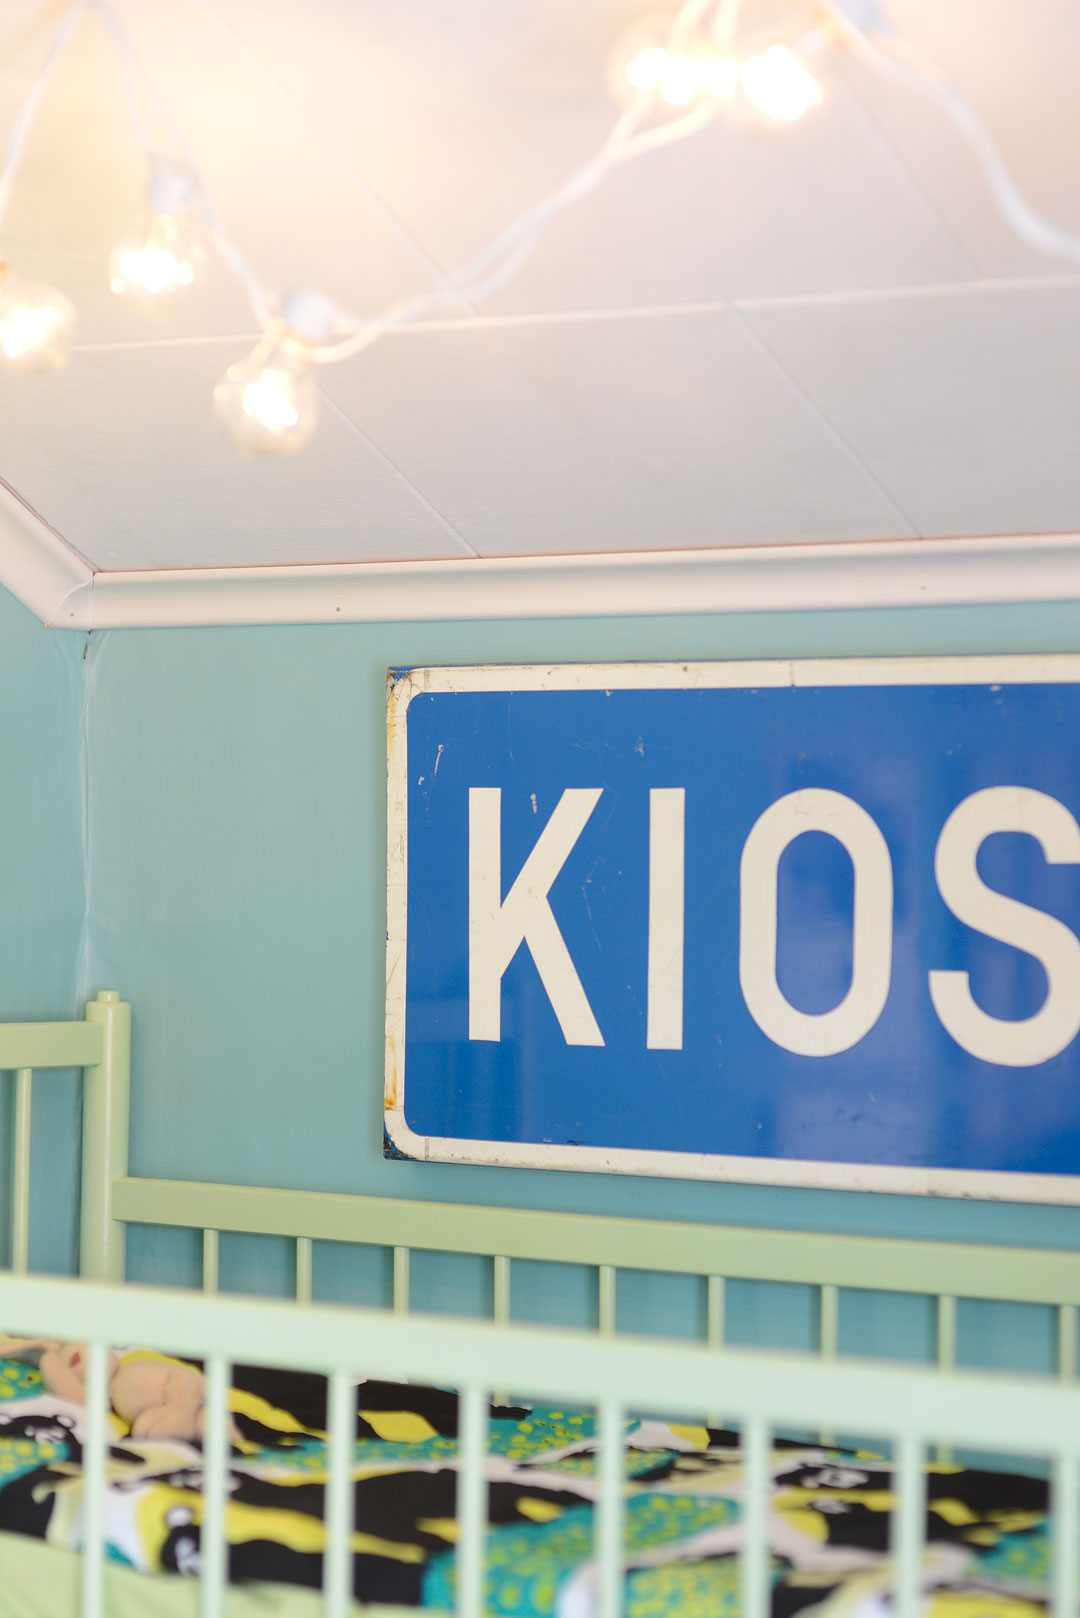 Kioski traffic sign in kids room